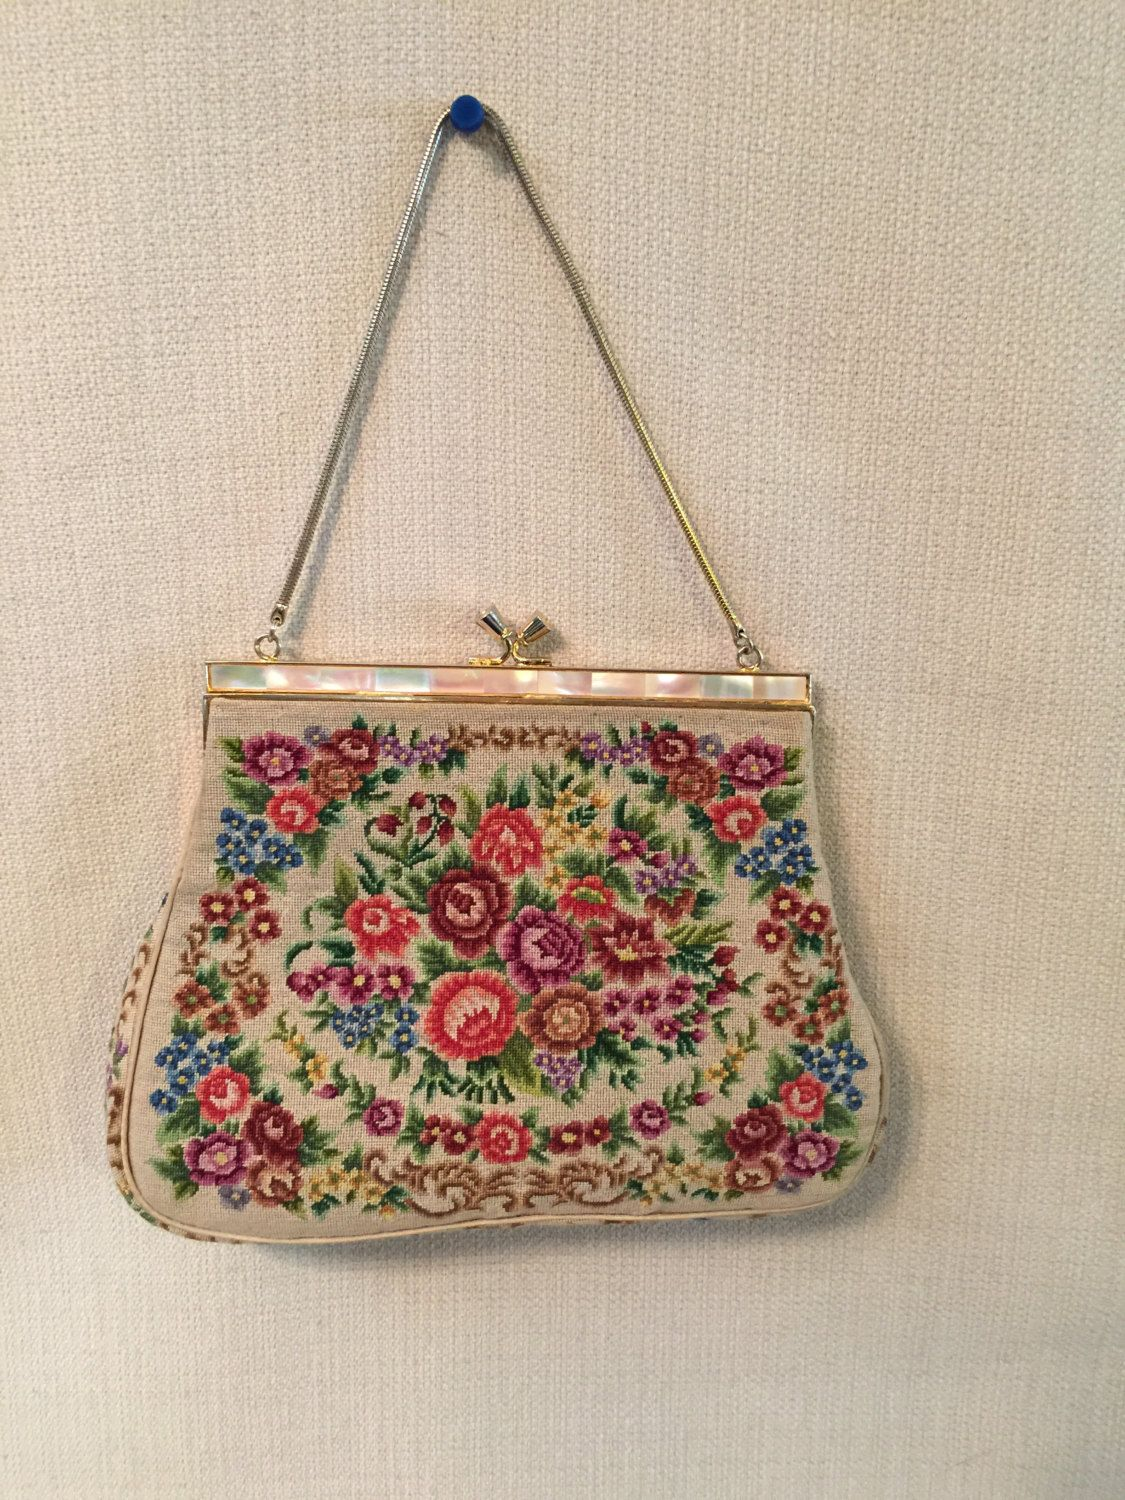 Vintage Petit Point Embroidered Floral Purse Handbag Mother of Pearl & Gold Tone Frame **Free USA Shipping** by TimeGoneByVintage on Etsy